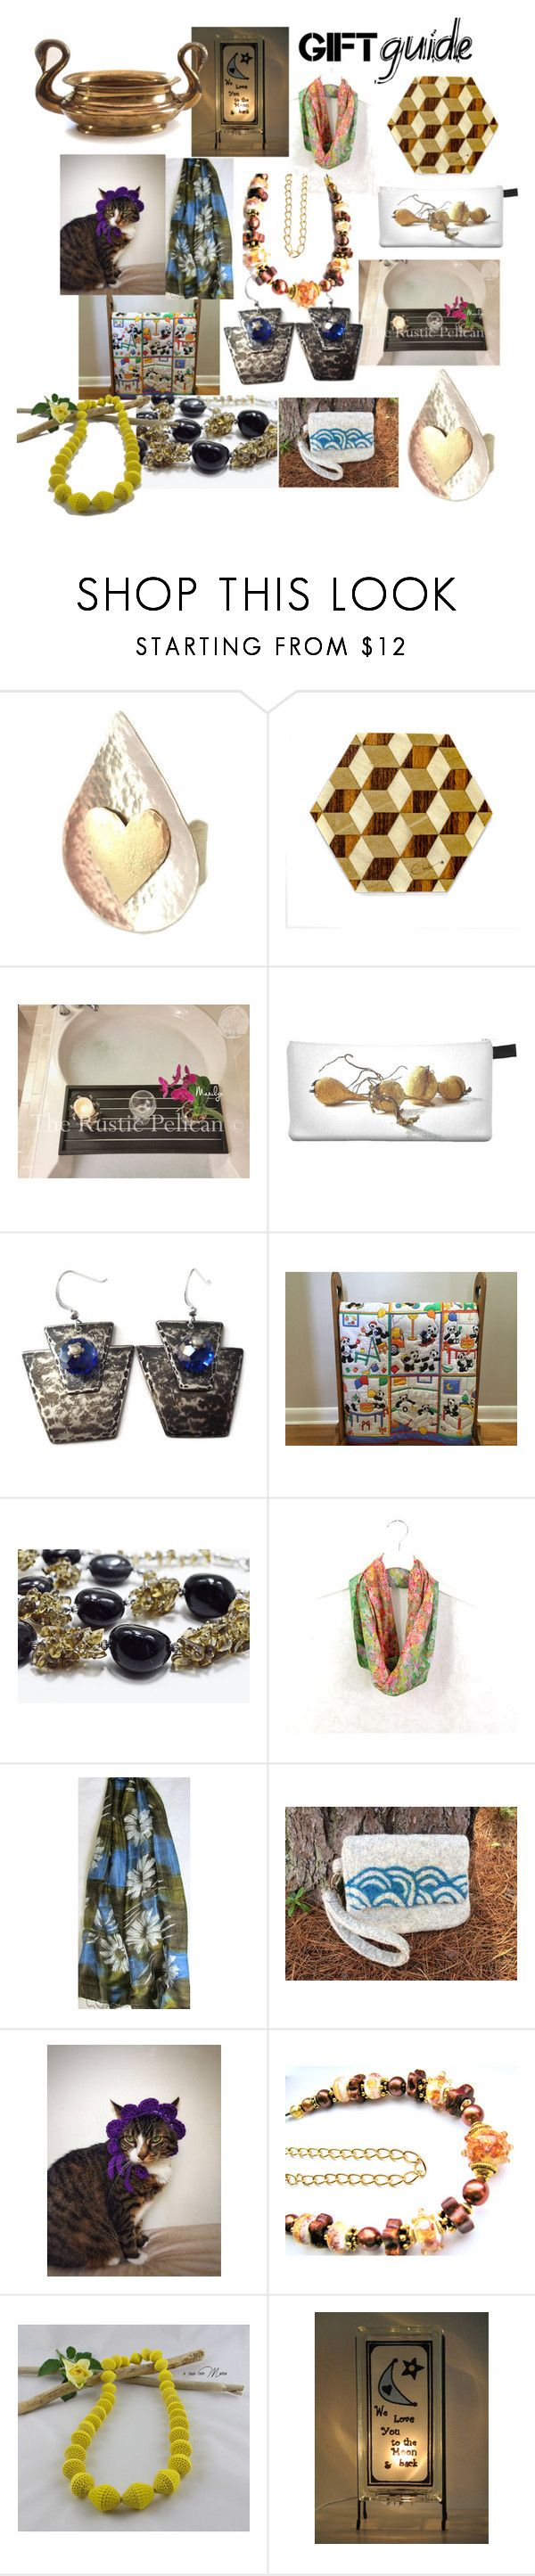 """""""Gift Guide"""" by anna-recycle ❤ liked on Polyvore featuring Giallo, modern, rustic and vintage"""